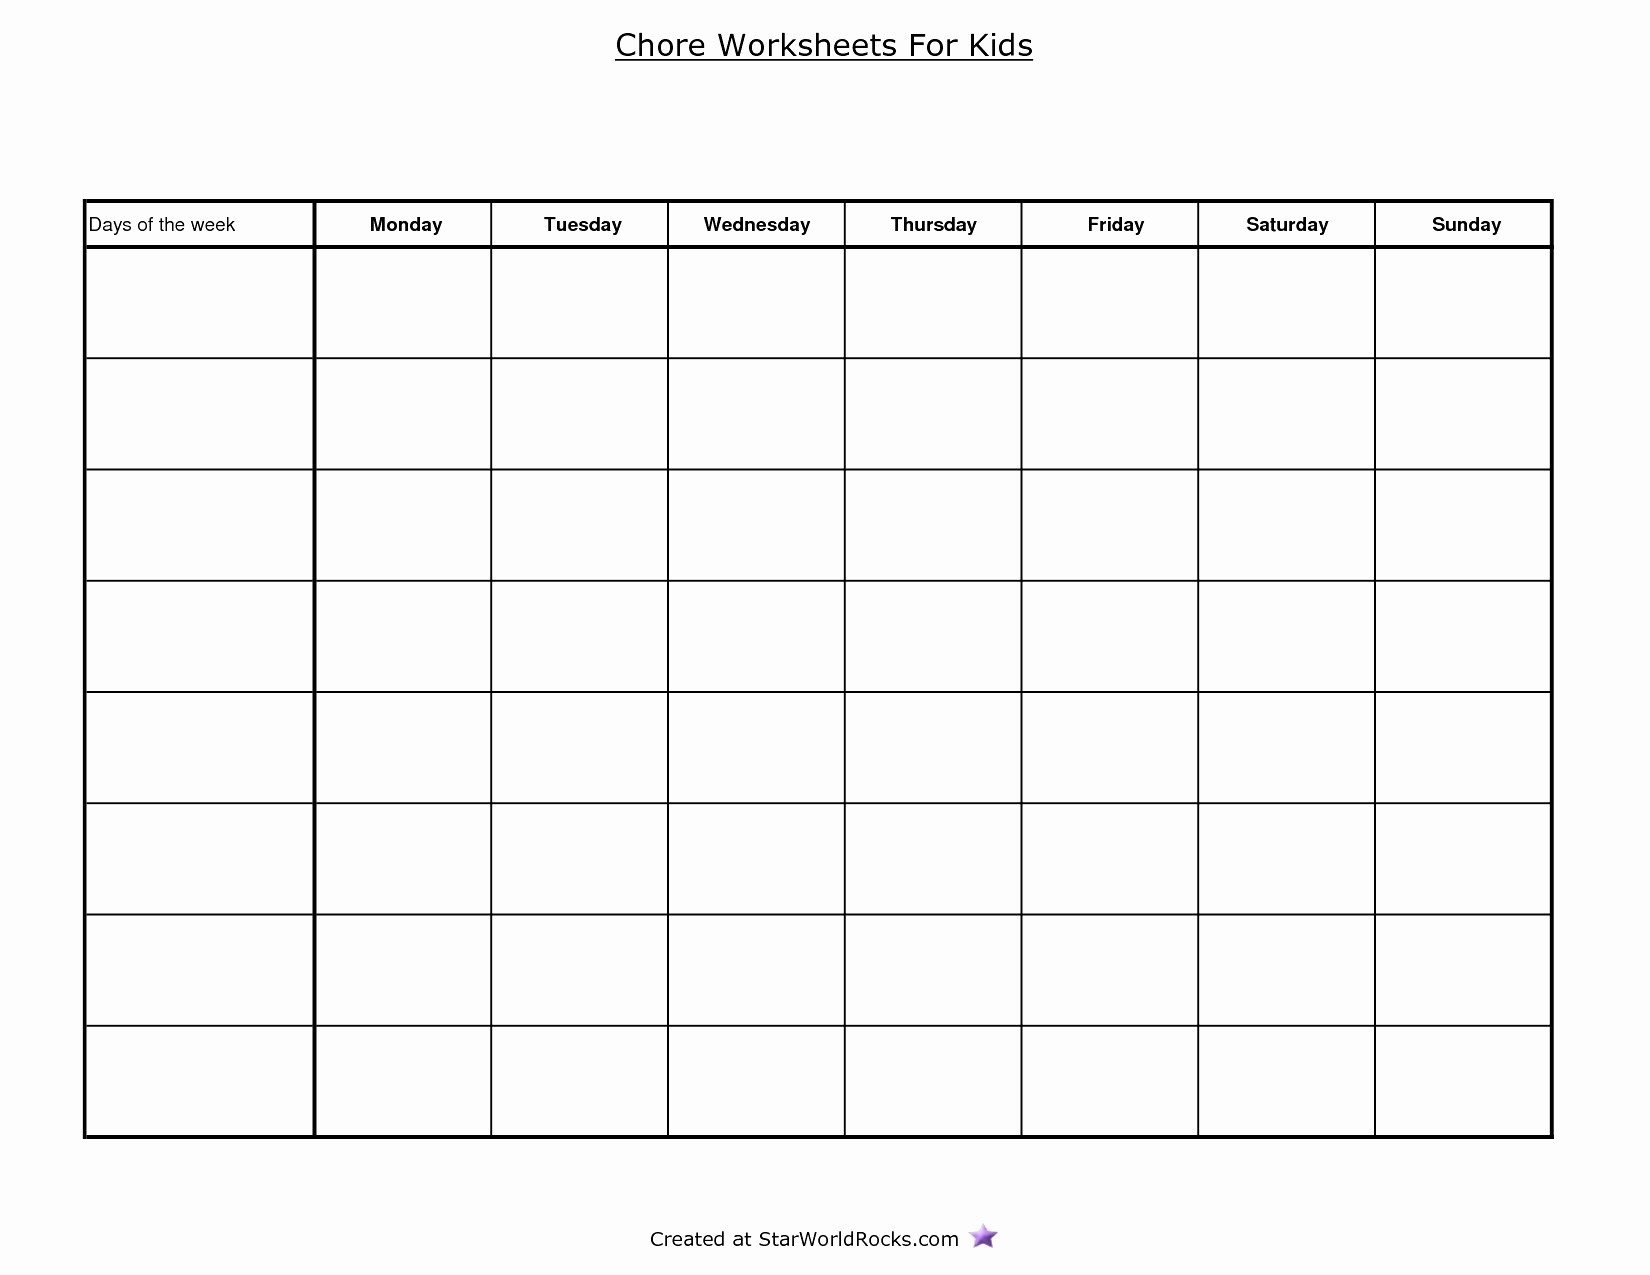 Blood Pressure Worksheets Printable